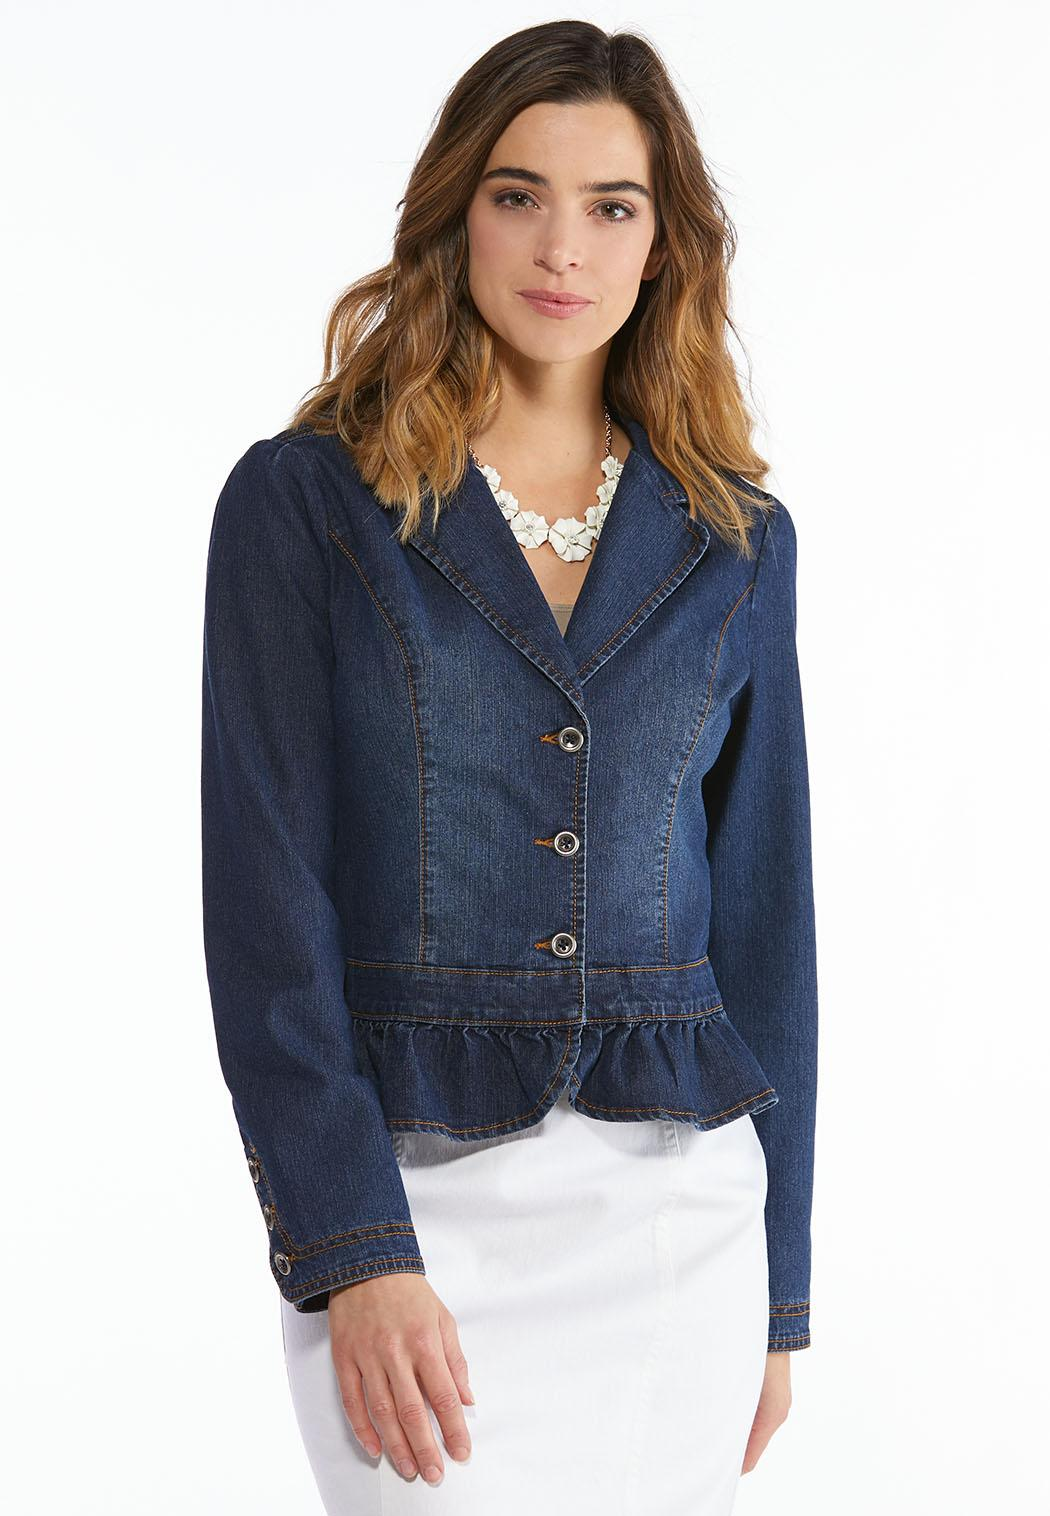 8ee3facf652 Plus Size Ruffled Denim Blazer Jackets Cato Fashions